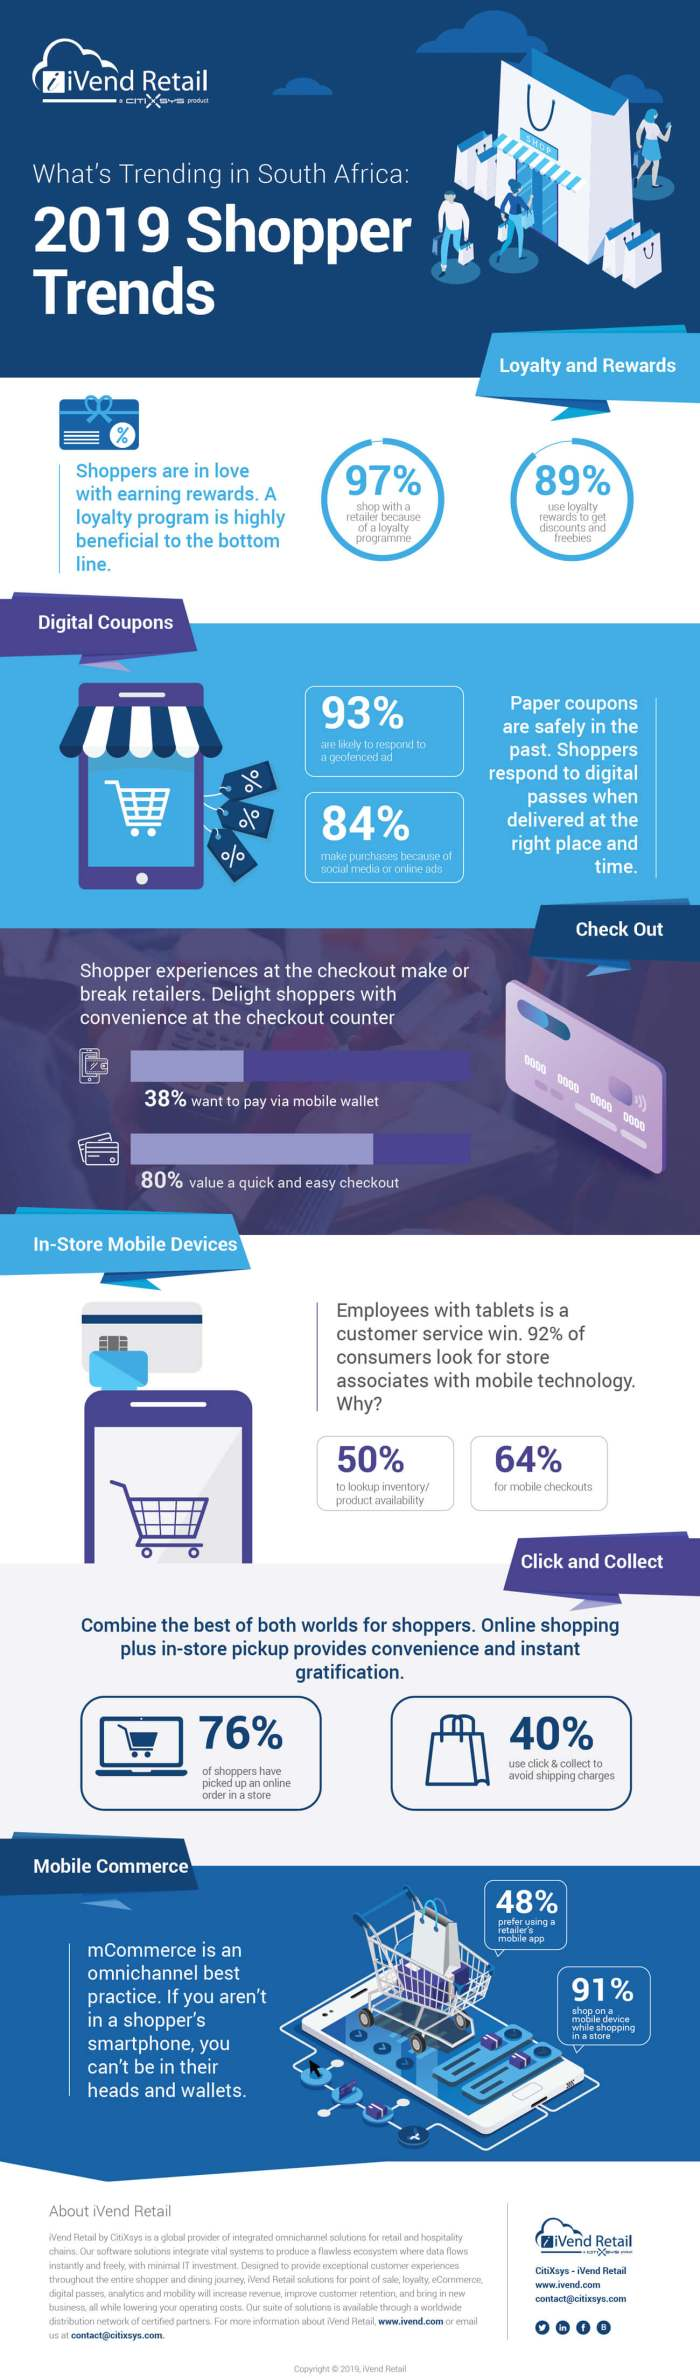 2019 Global Shopper Trends - South African - Infographic